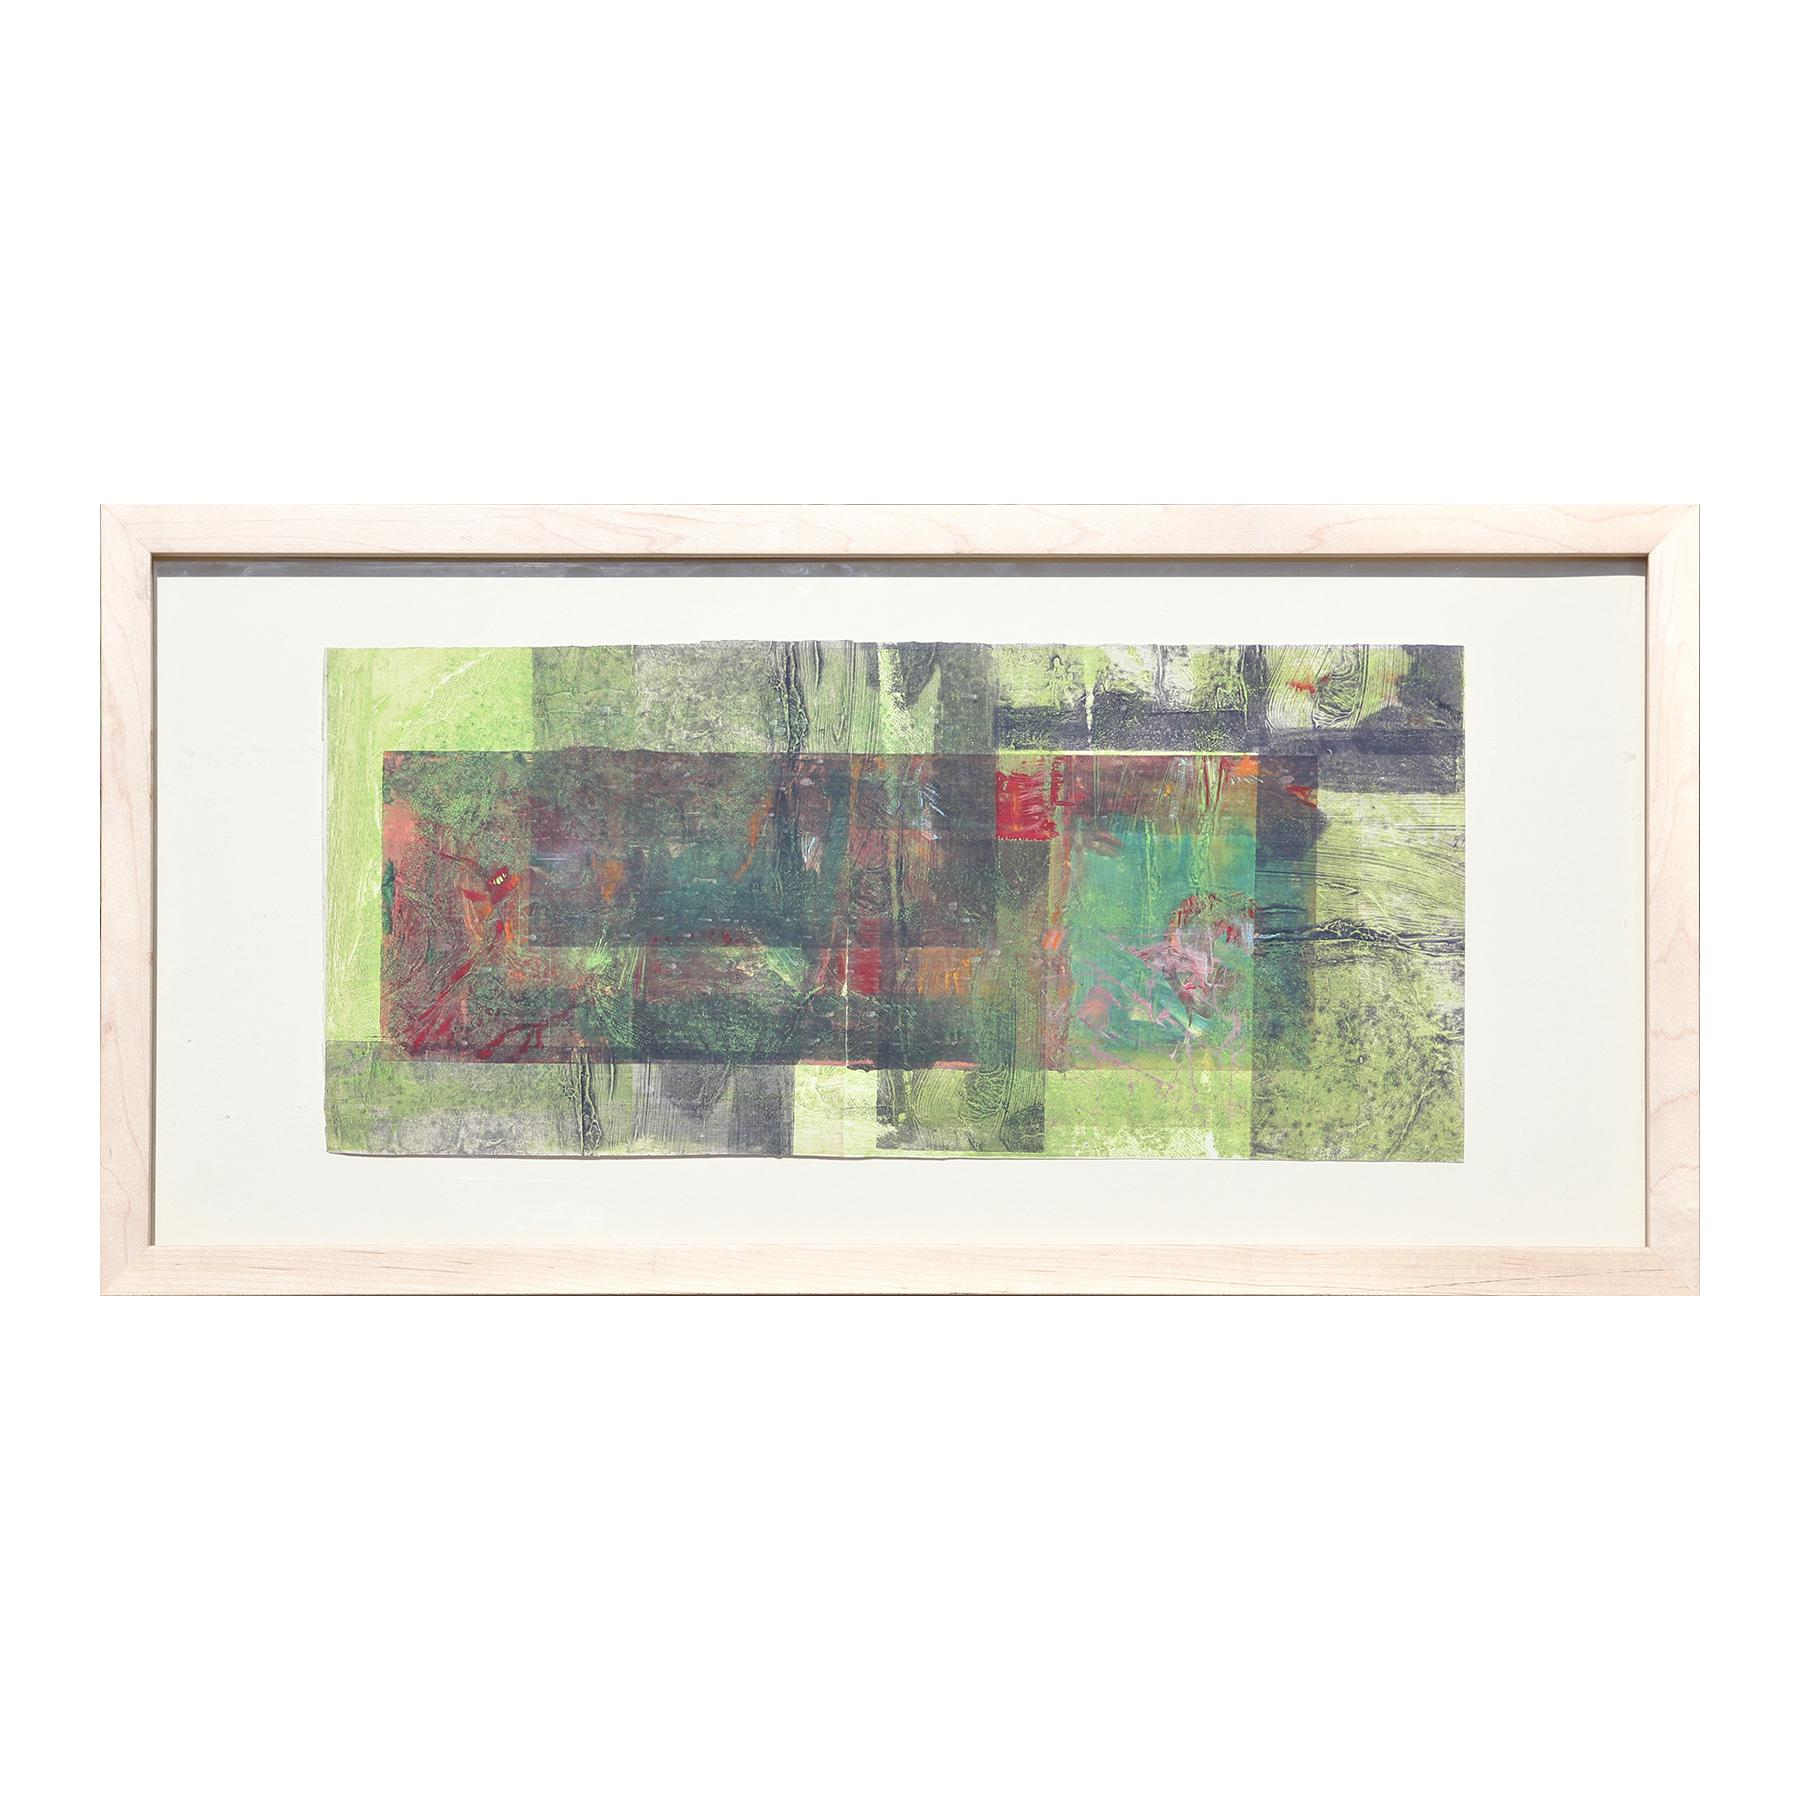 """""""Untitled R43 0387"""" Abstract Green, Red, and Grey Toned Mixed Media Painting"""